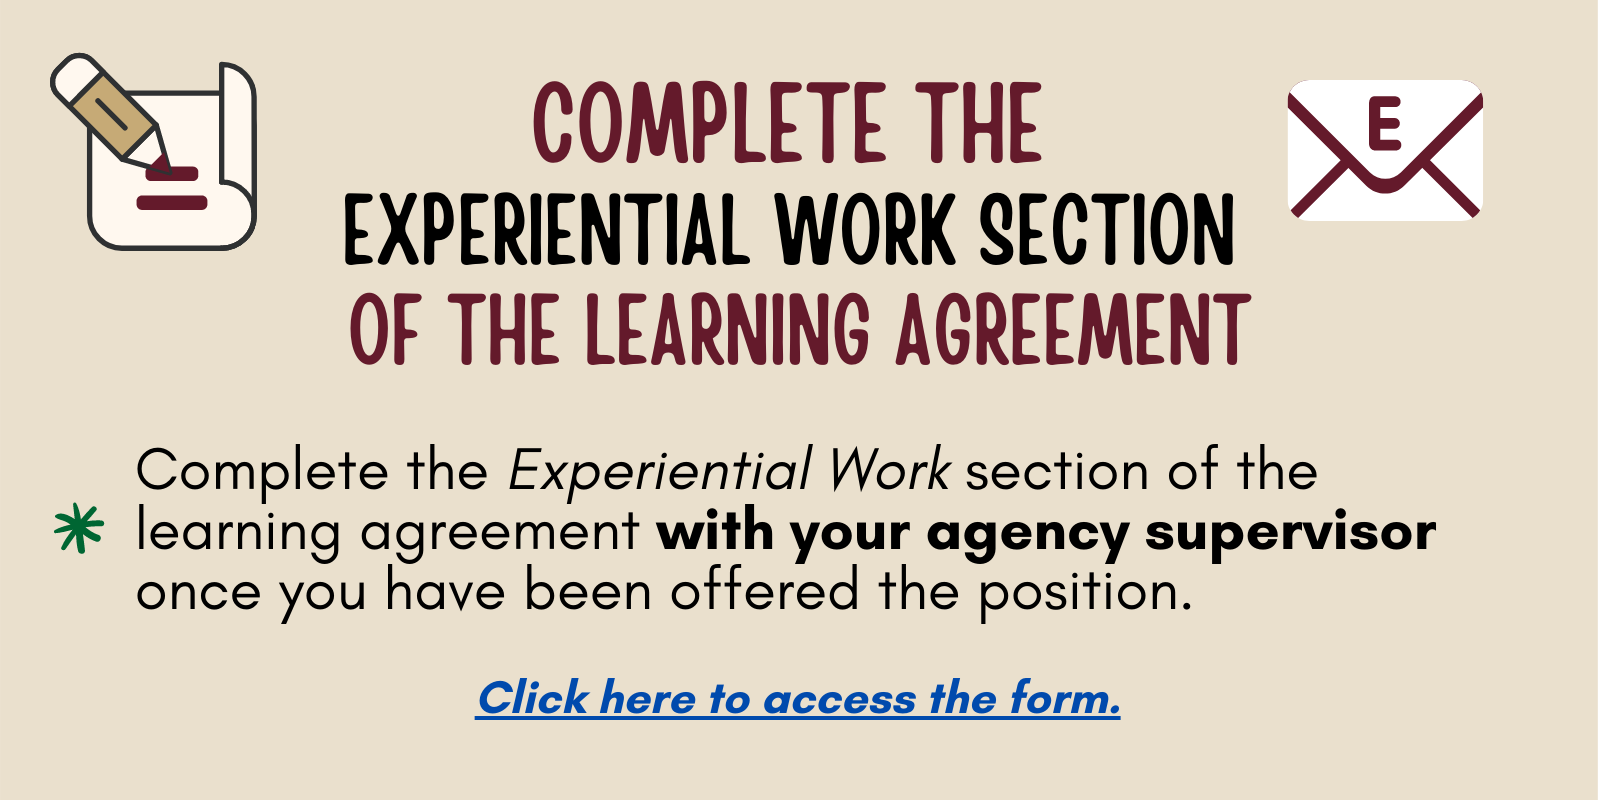 Complete the Experiential Work Section of the Learning Agreement. Click here to access the form.